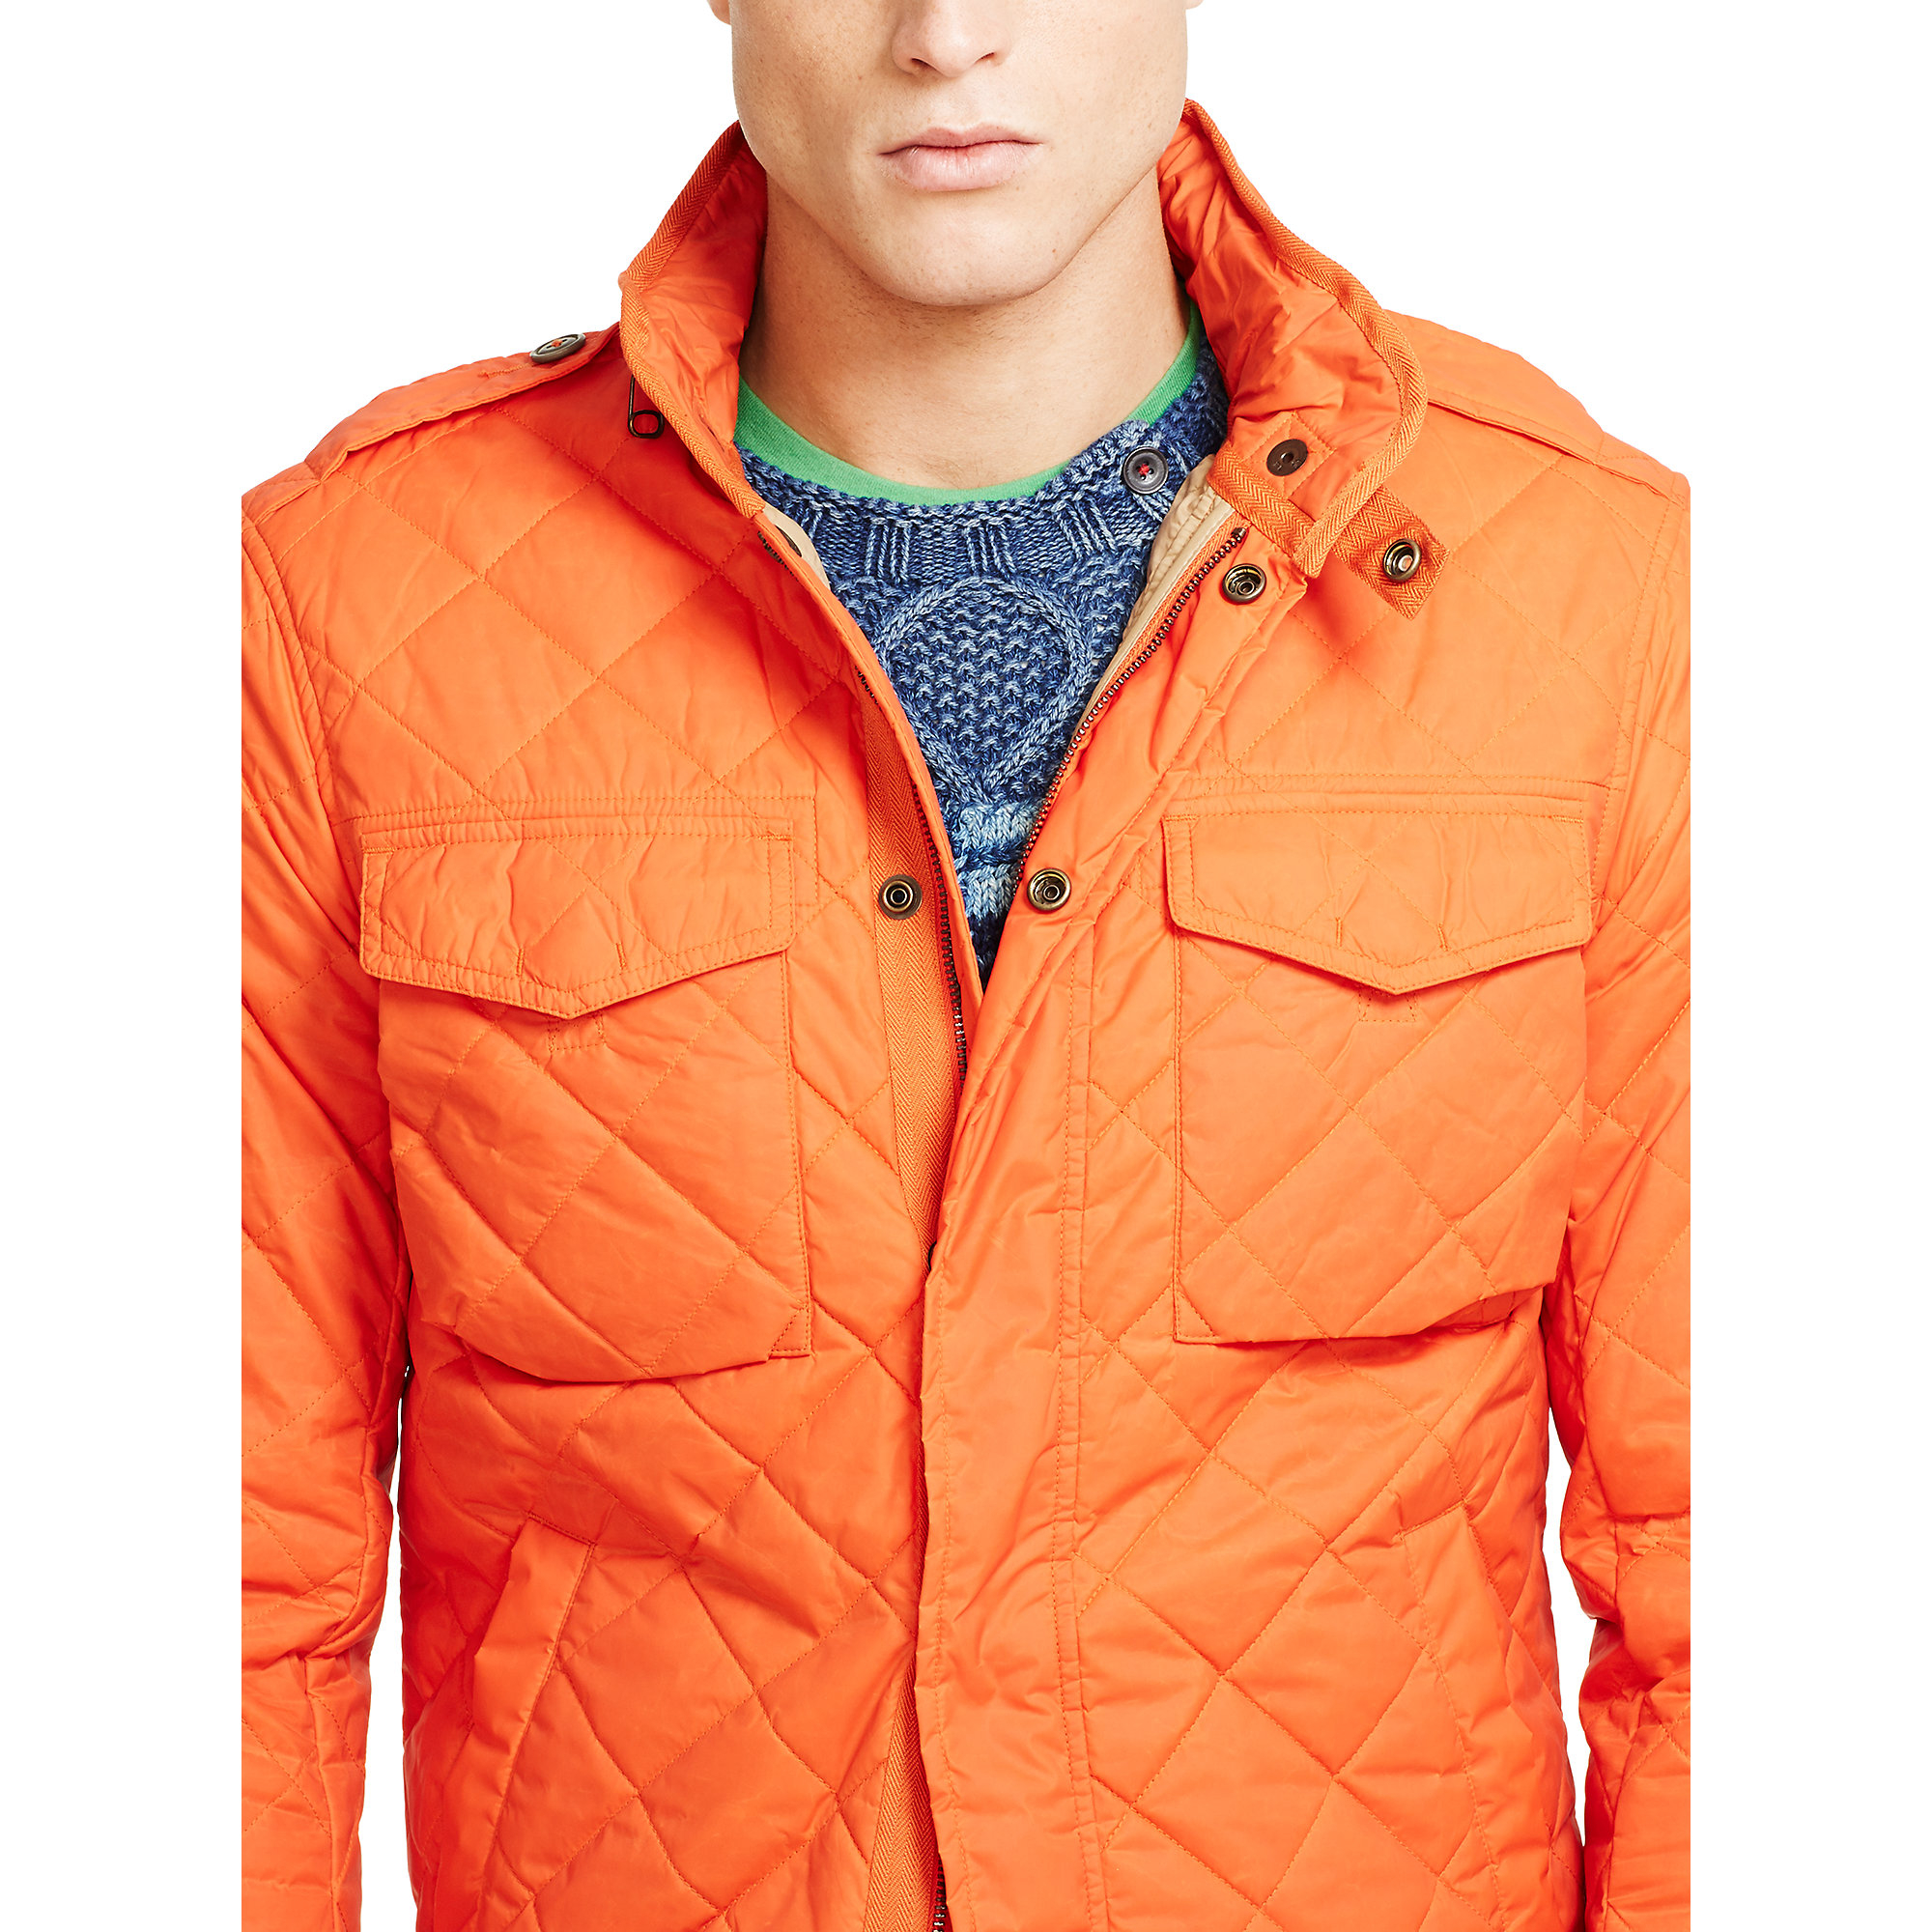 8428a1712f3 Lyst - Polo Ralph Lauren Quilted M65 Shirt Jacket in Orange for Men